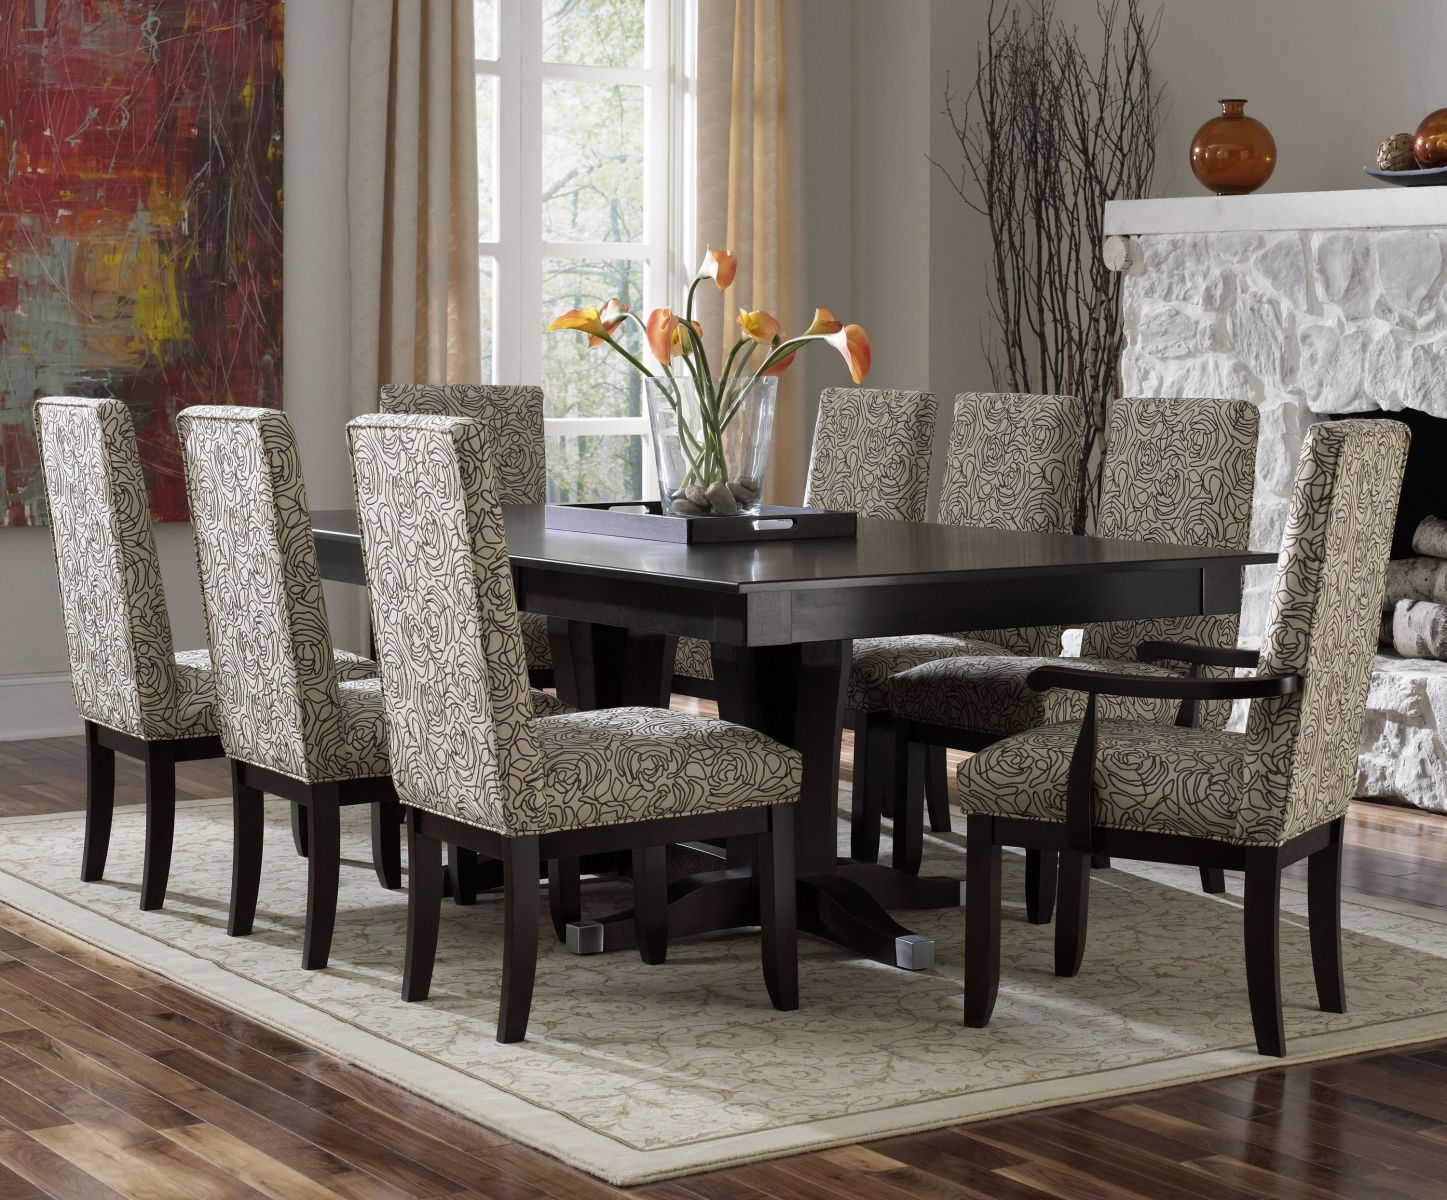 dining room sets. D cor for Formal Dining Room Designs  Contemporary dining room